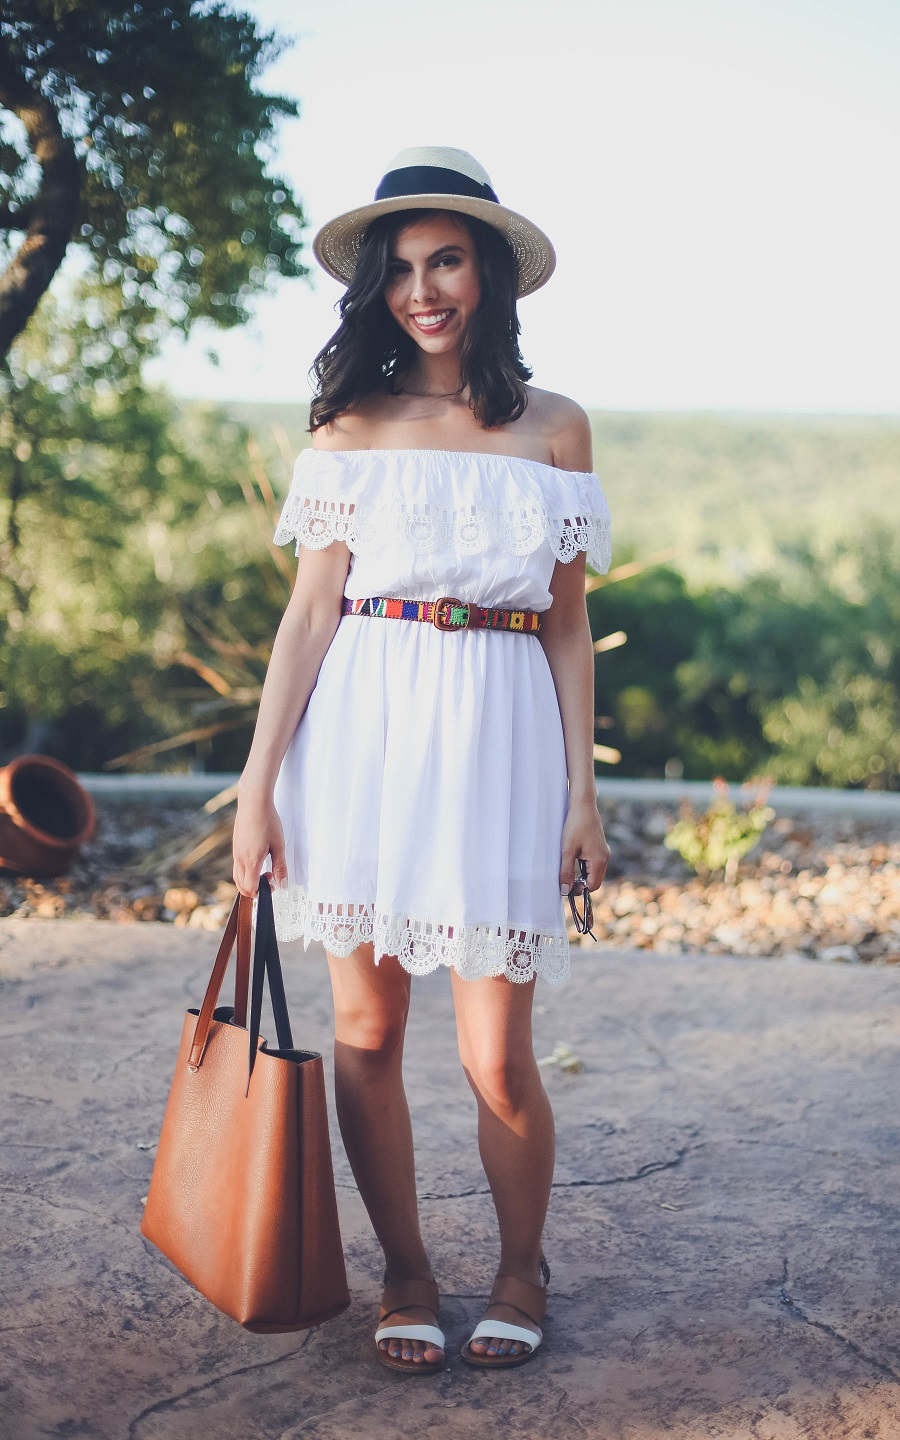 austin texas, austin fashion blog, austin fashion blogger, austin fashion, austin fashion blog, white and blue floral dress, sheinside dress, pinterest dress, off the shoulder dress, austin style, austin style blog, austin style blogger, austin style bloggers, style bloggers, summer dress, white summer dress